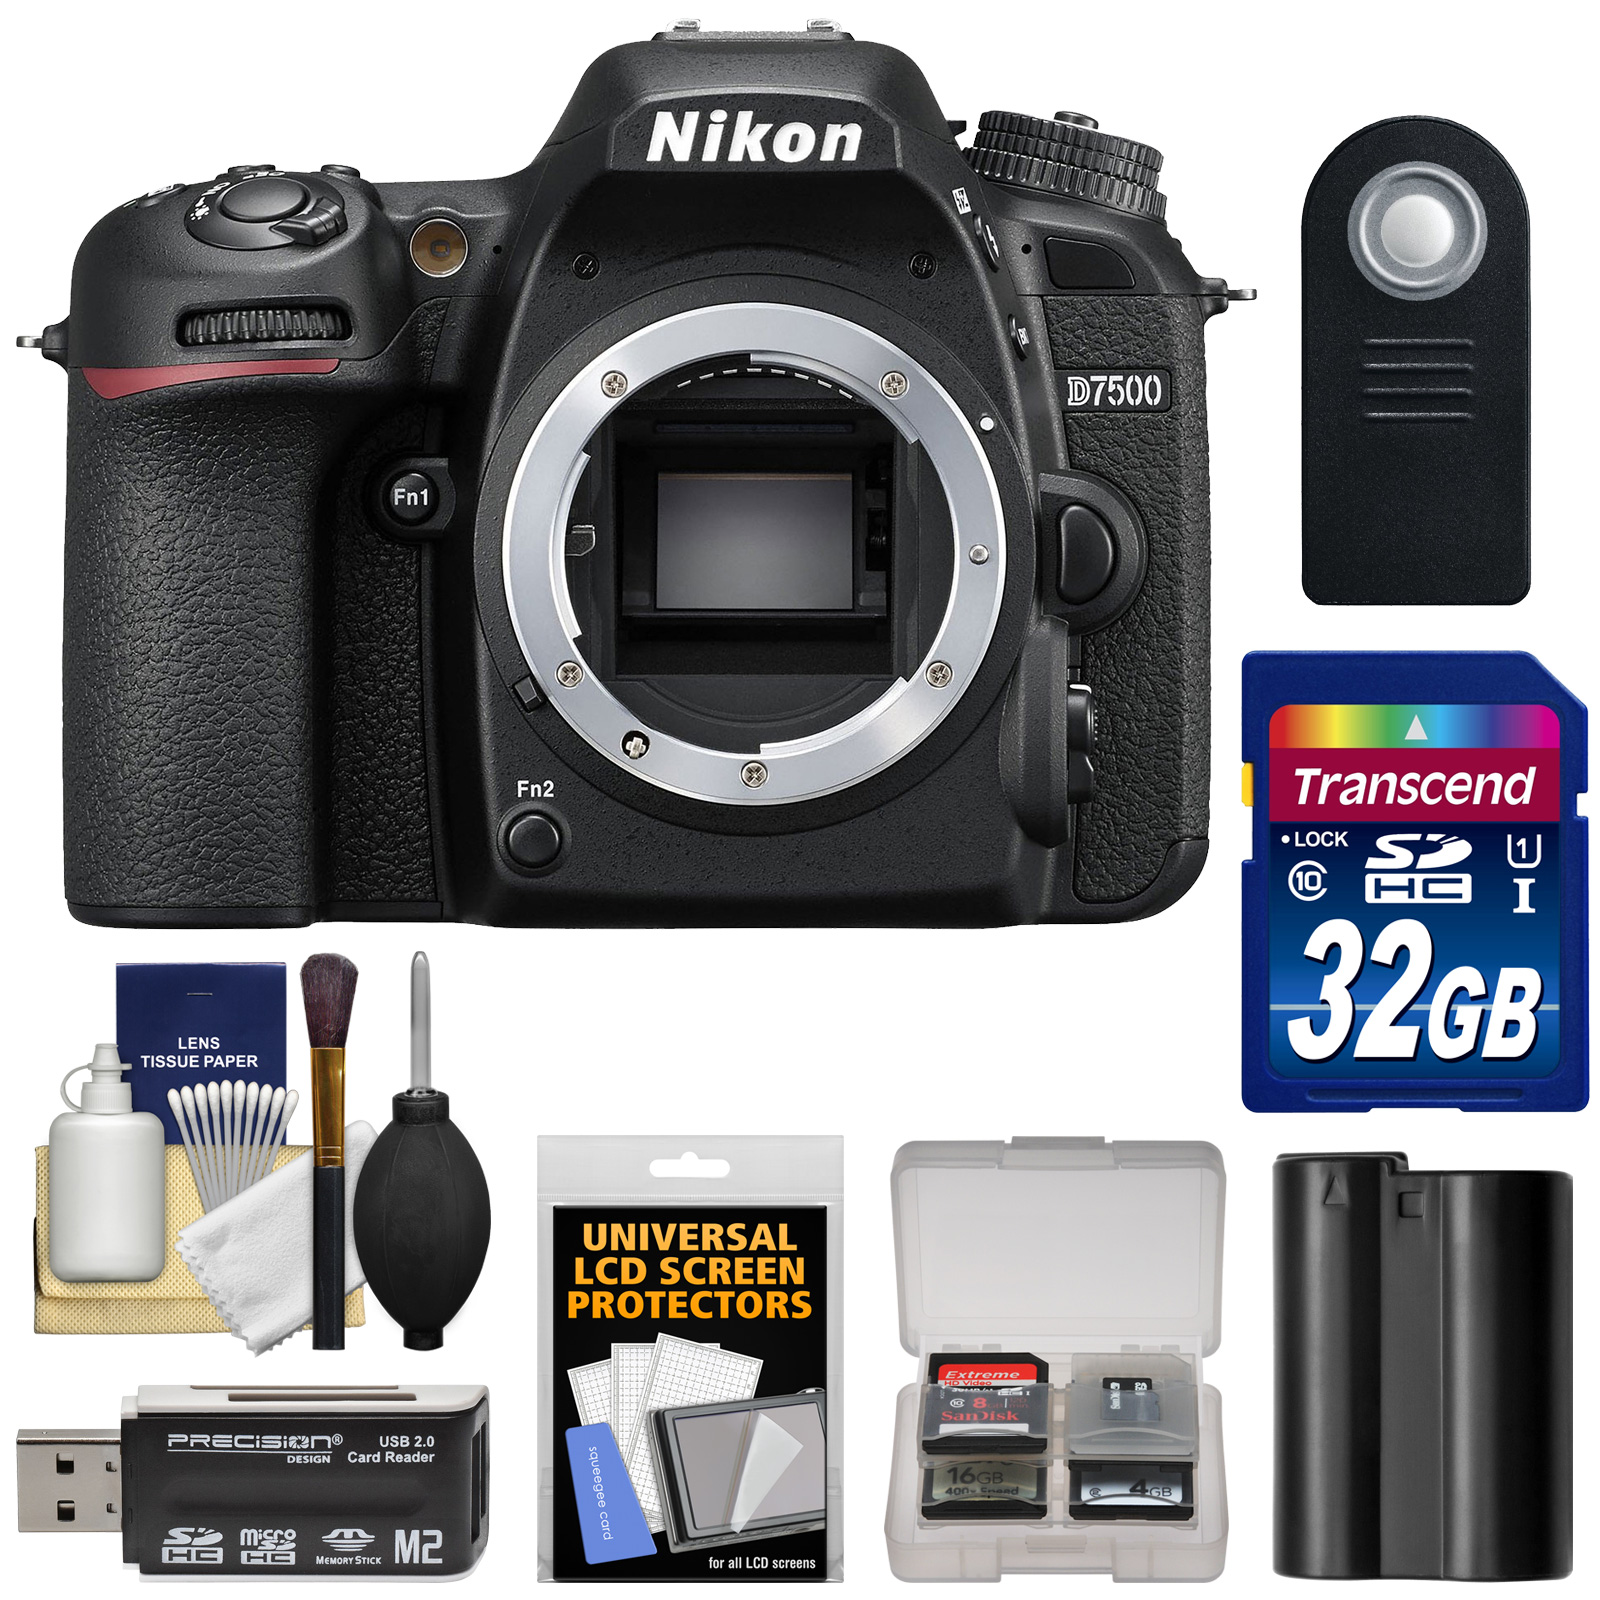 Nikon D7500 Wi-Fi 4K Digital SLR Camera Body - Factory Refurbished with  32GB Card + Battery + Remote + Reader + Kit